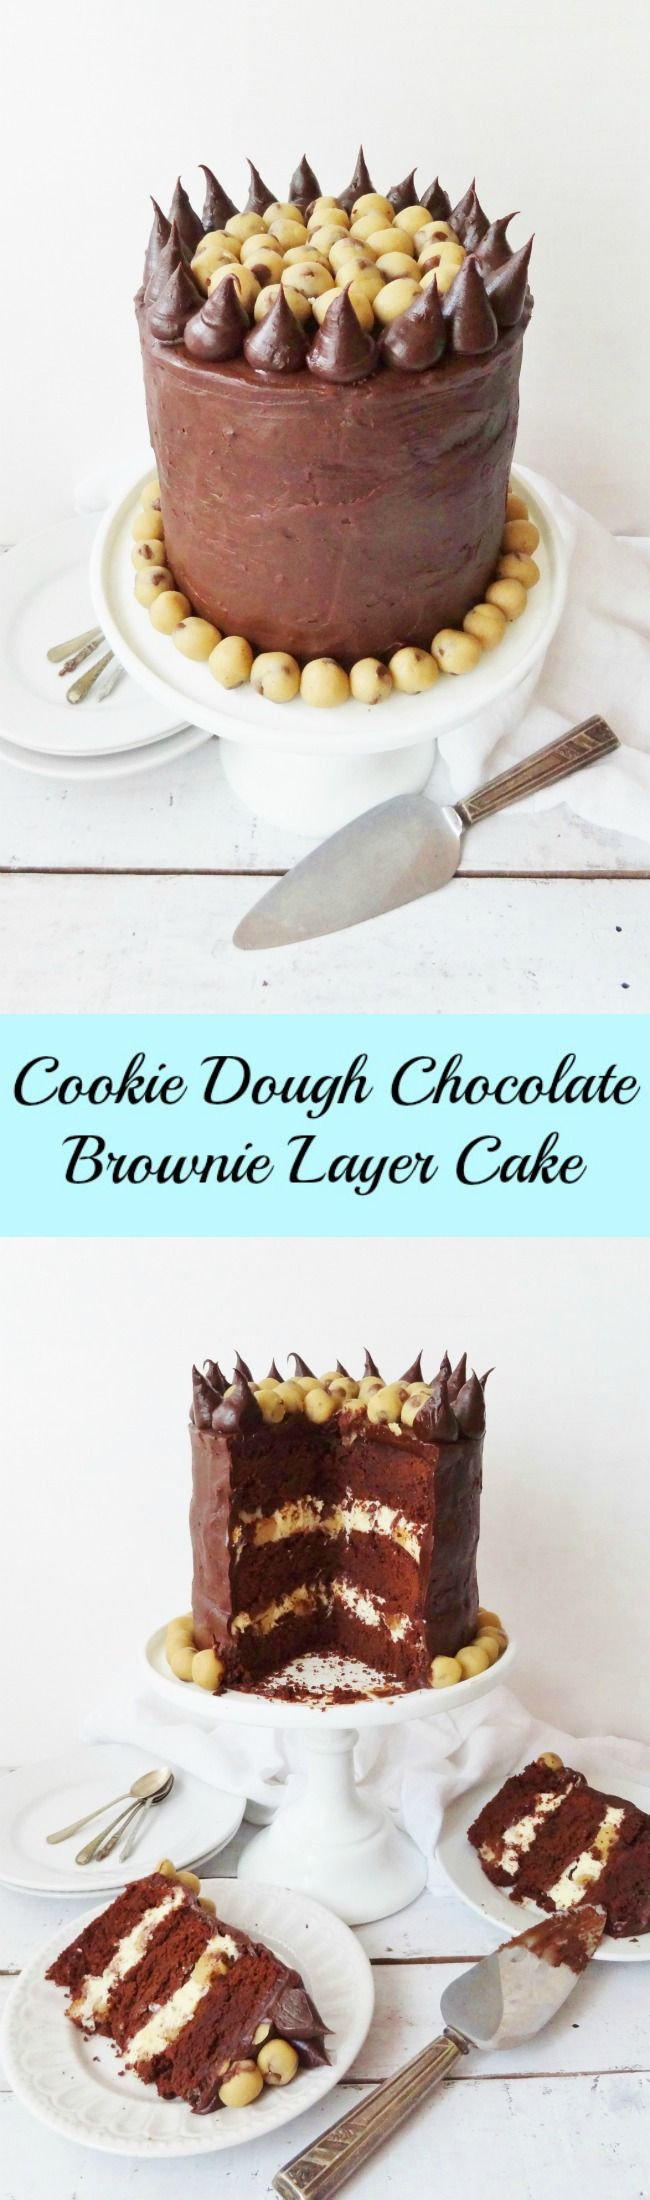 Cookie dough chocolate brownie layer cake - AKA Ben and Jerry's Half Baked inspired cake - recipe